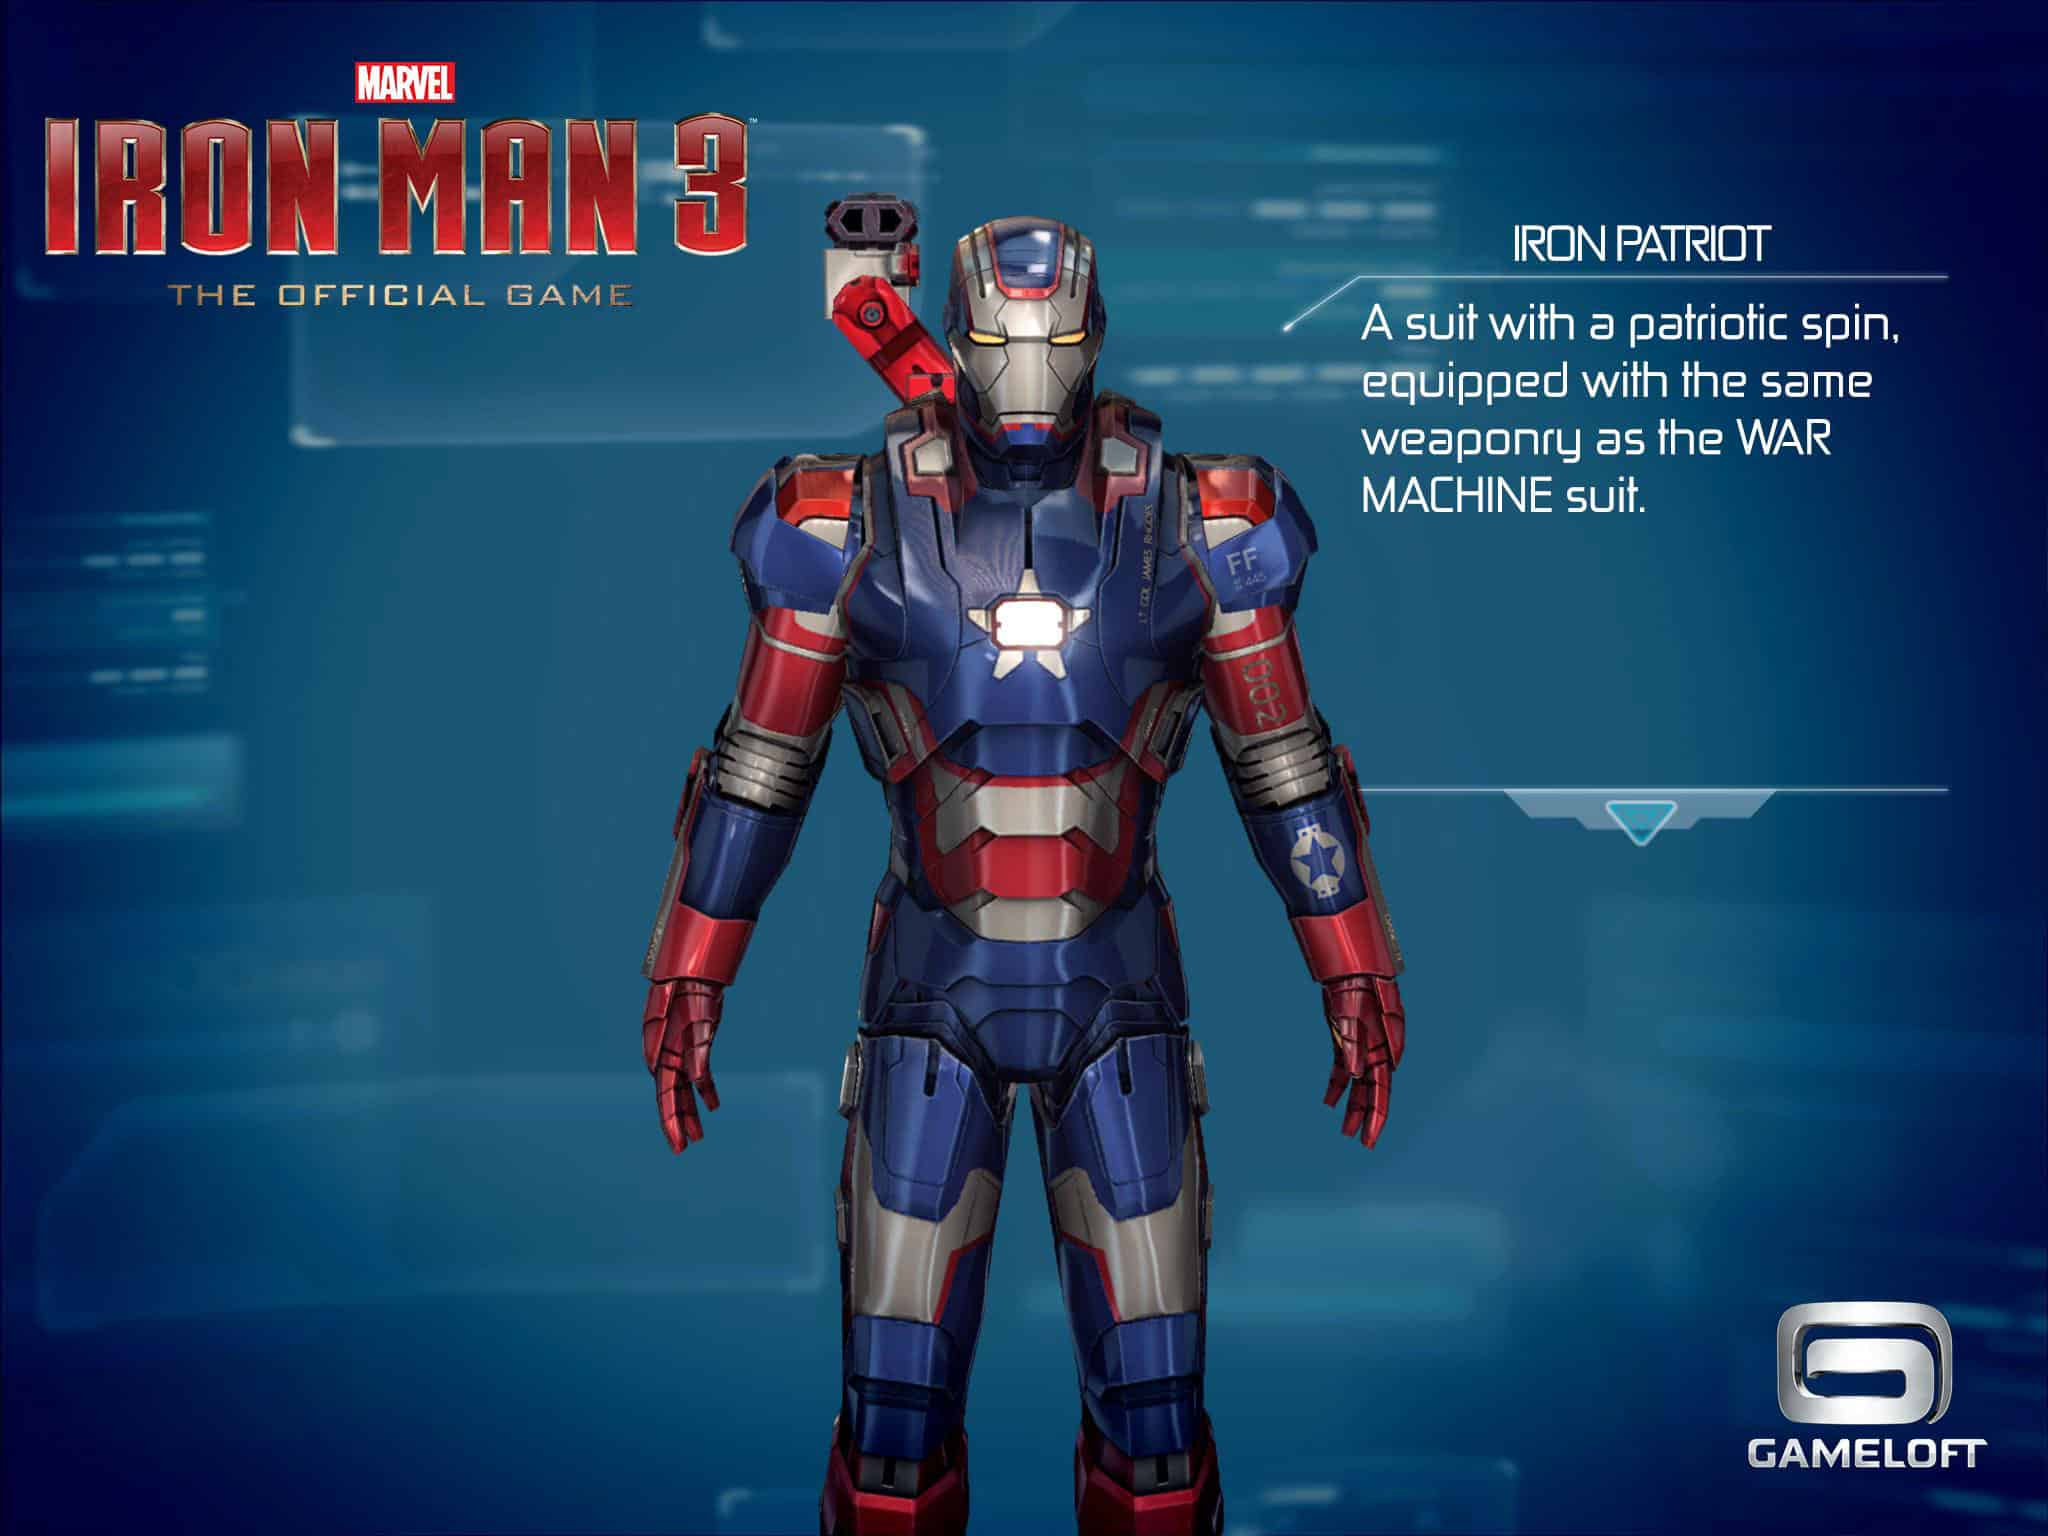 iron-man-3-android-game-iron-patriot-1